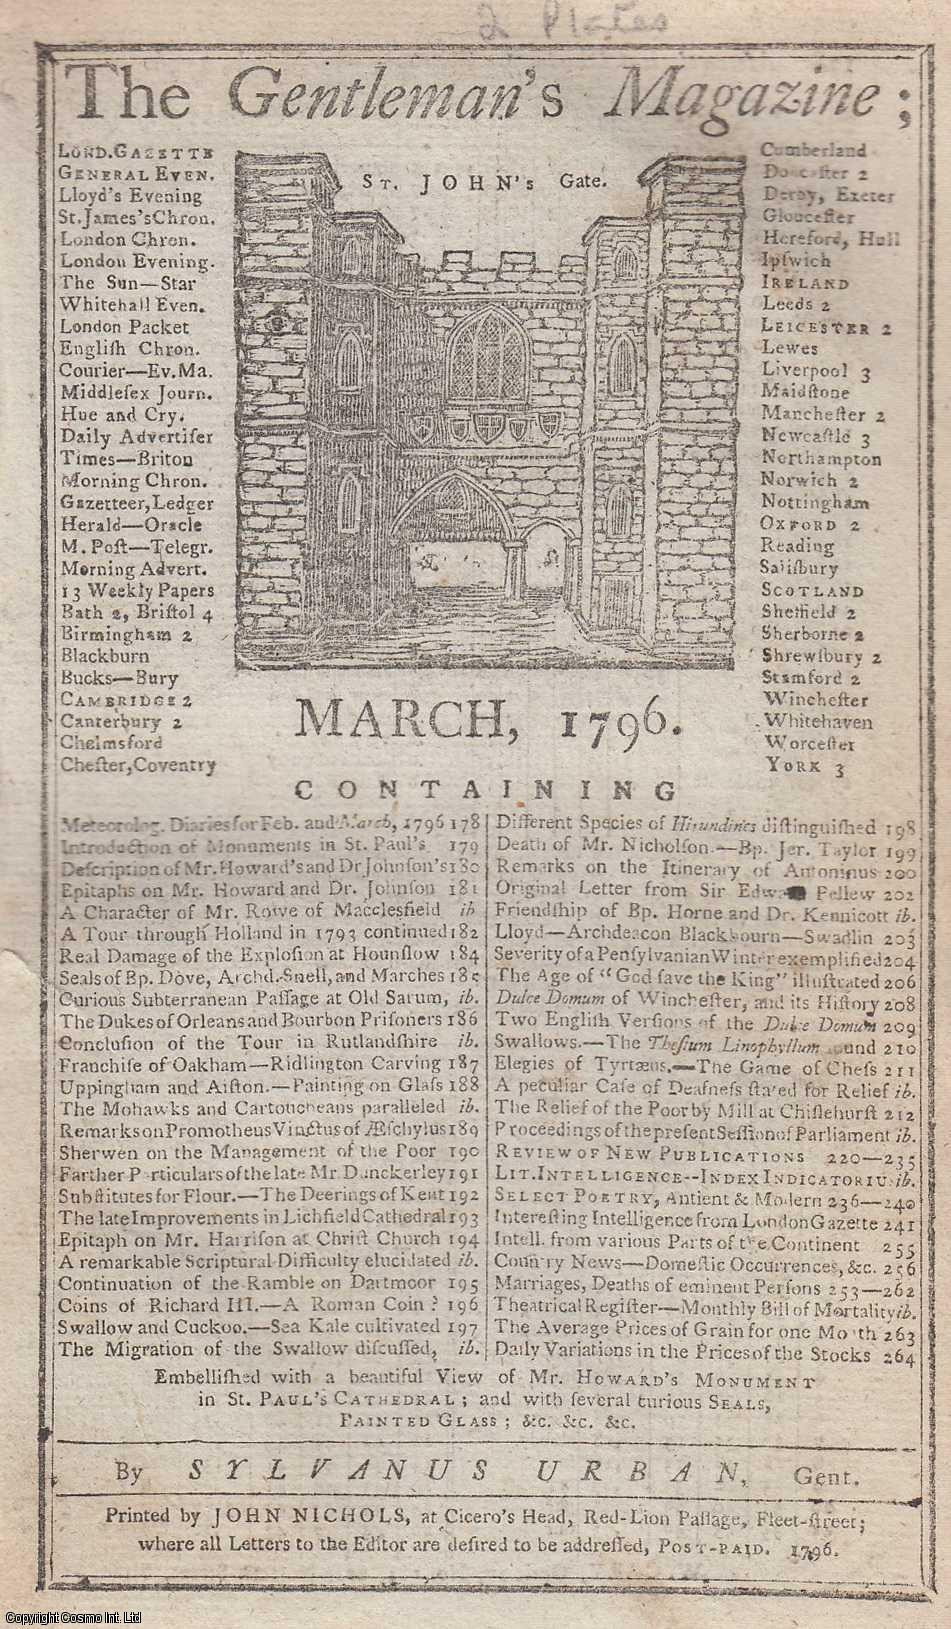 The Gentleman's Magazine for March 1796.  FEATURING Two Plates; John Howard's Monument in St. Paul's Cathedral & Several Seals, etc., Urban, Sylvanus.